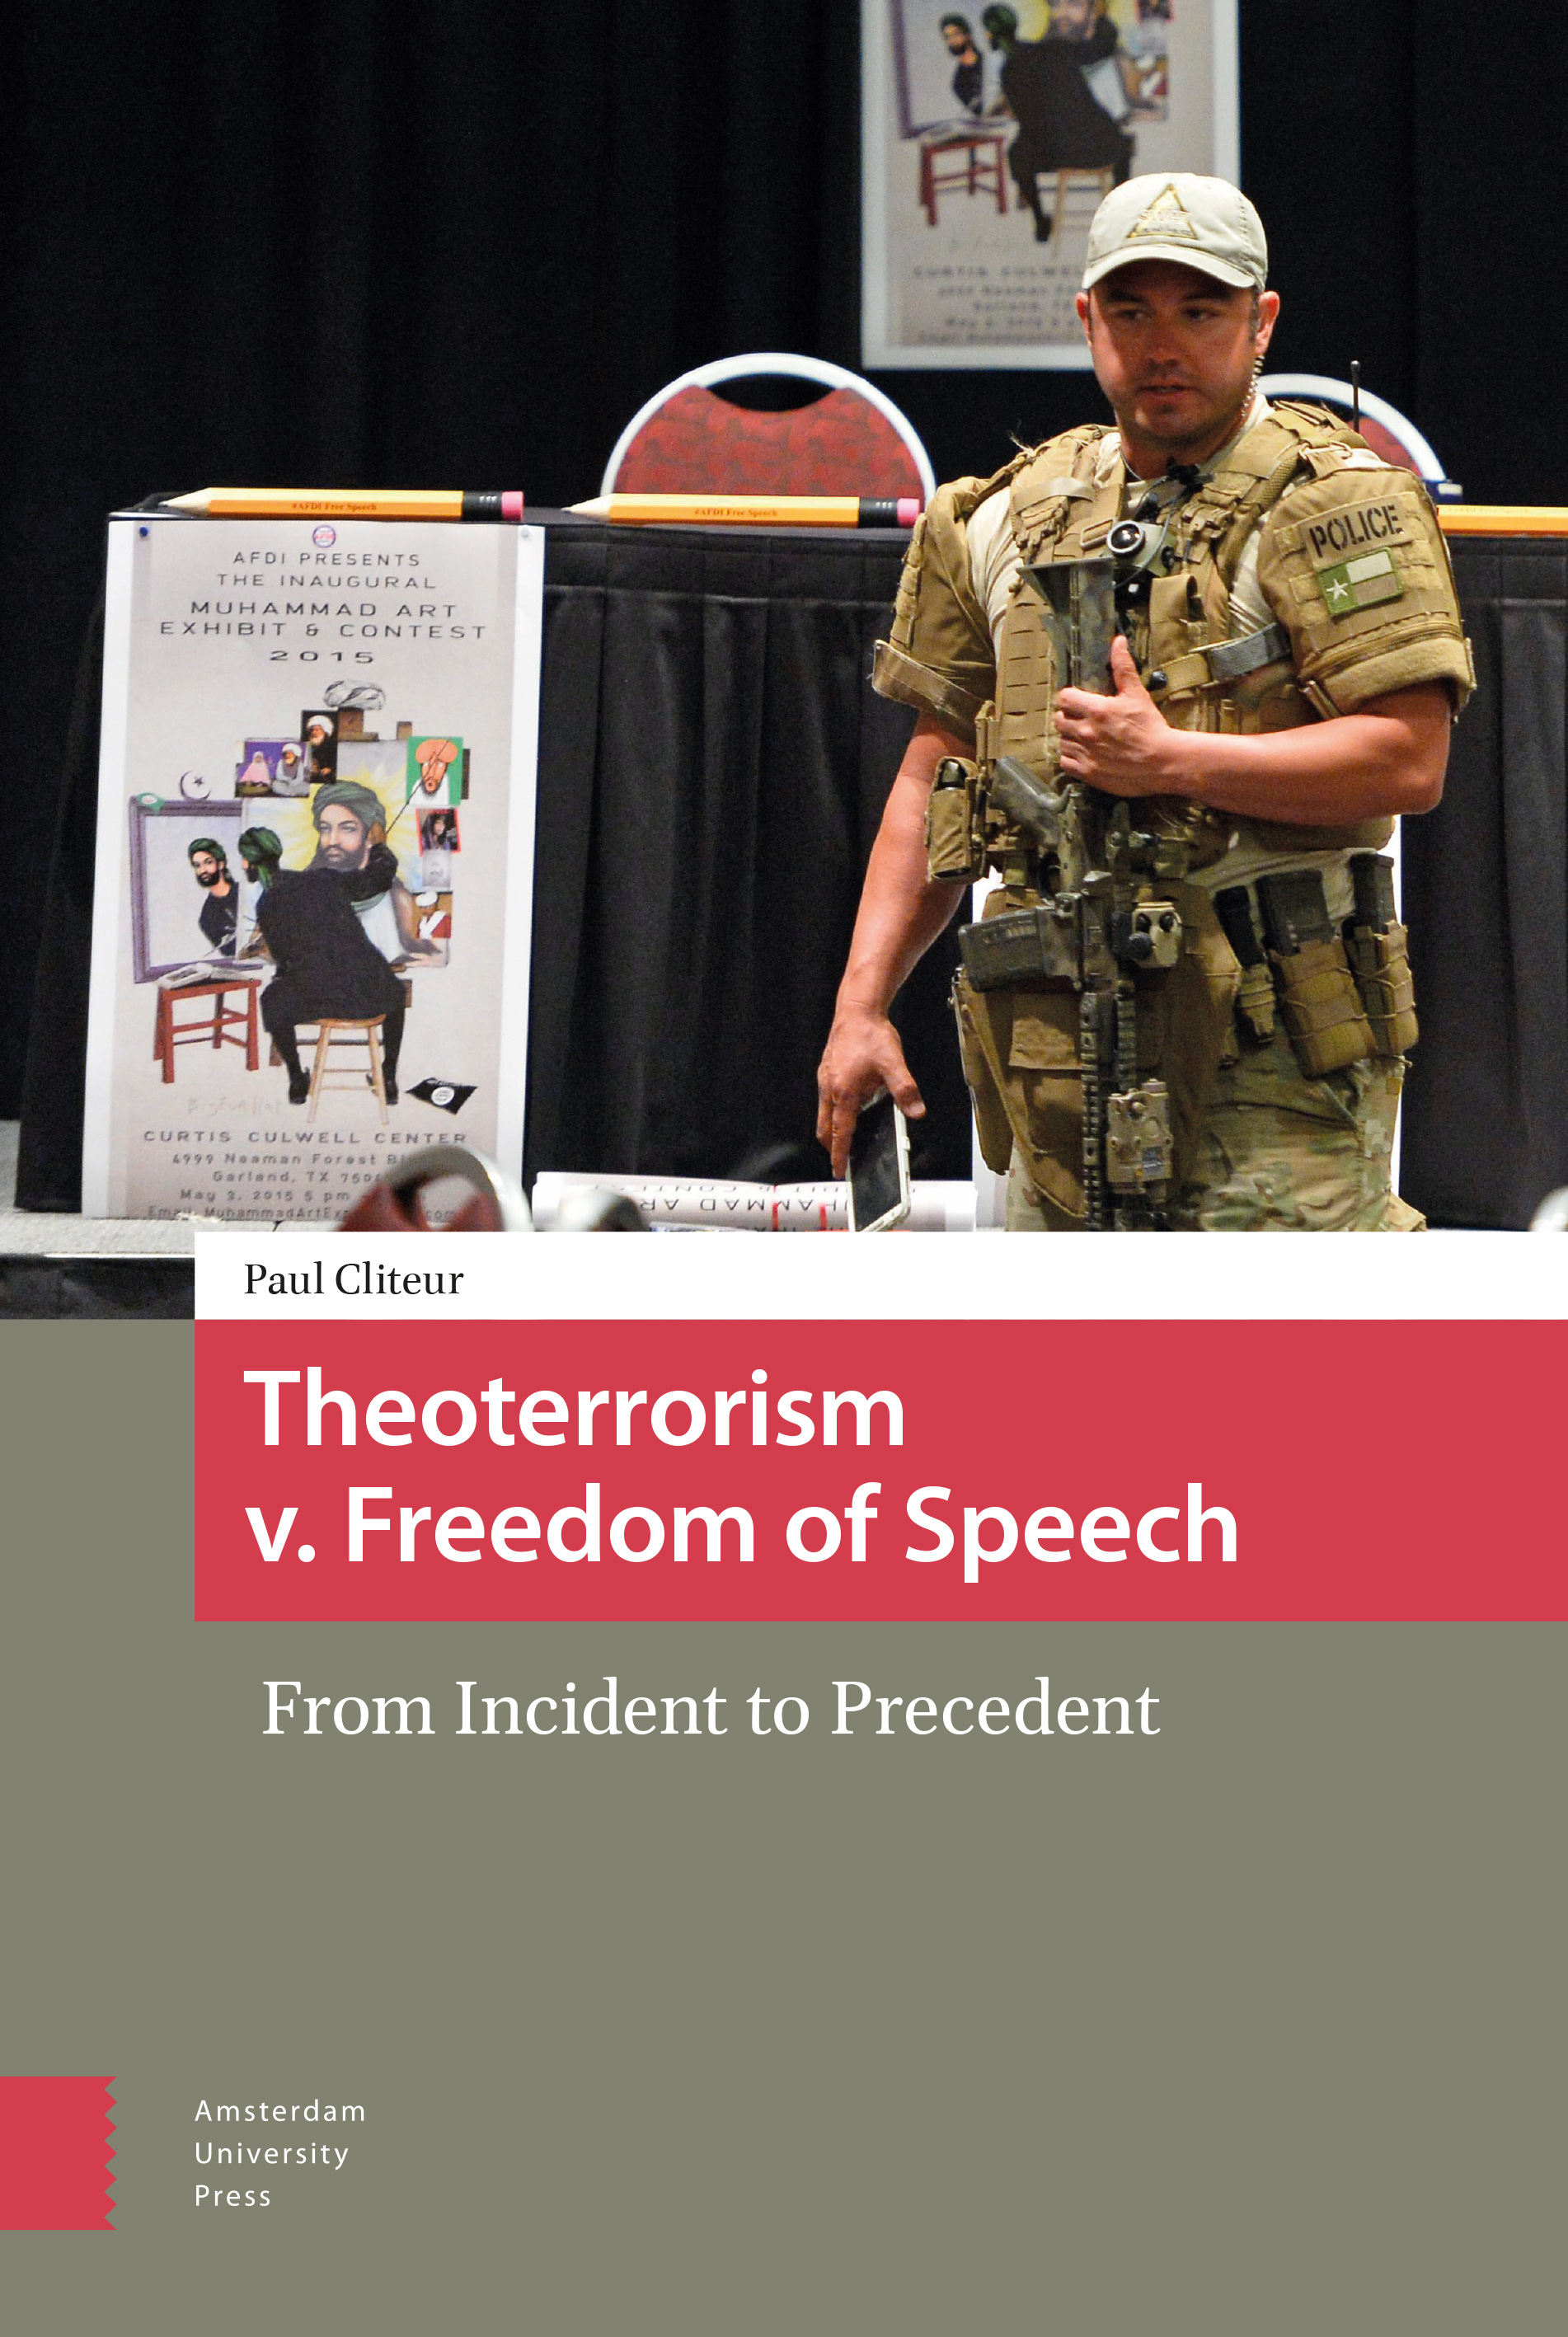 Theoterrorism v. Freedom of Speech